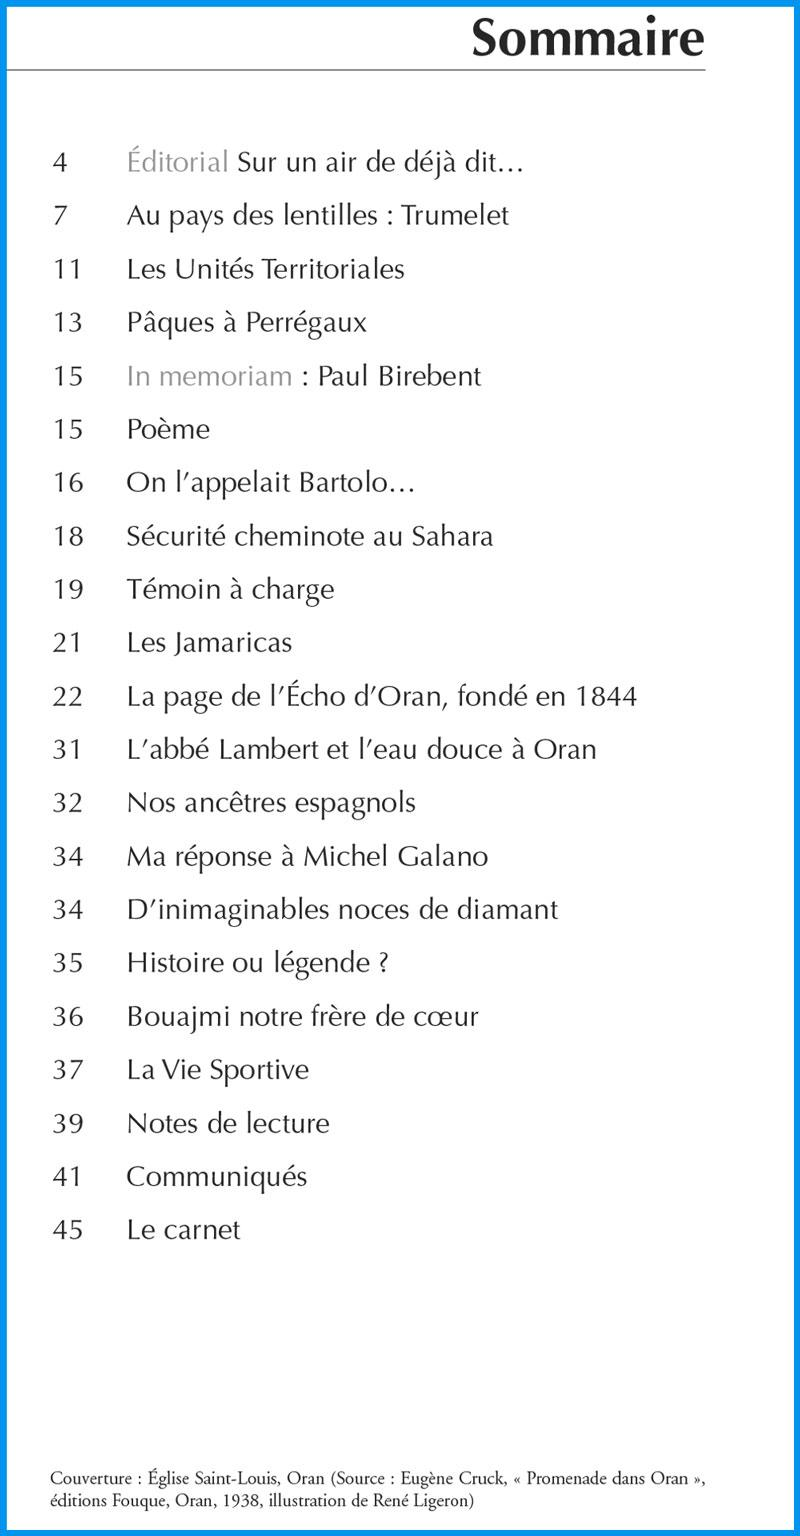 394 sommaire